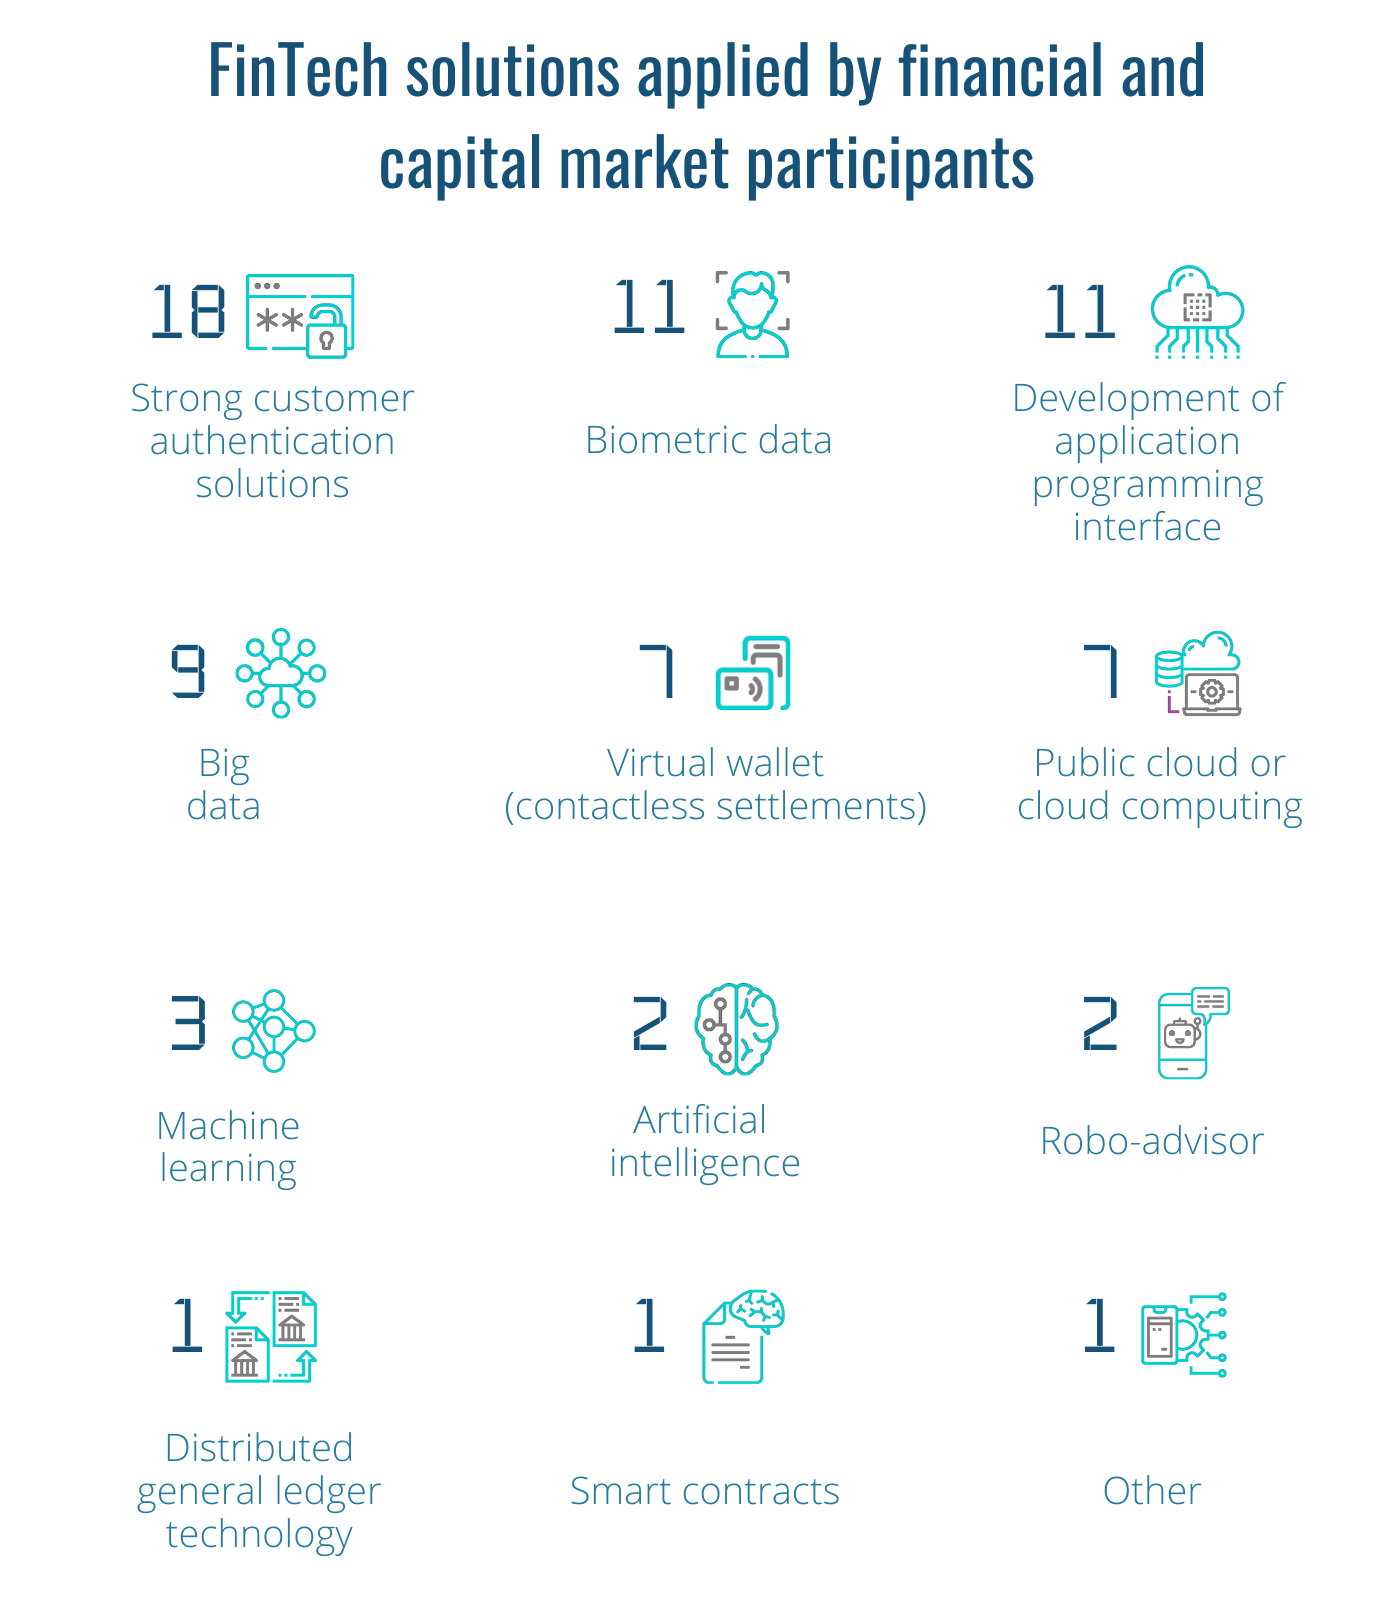 FinTech solutions applied by financial and capital market participants